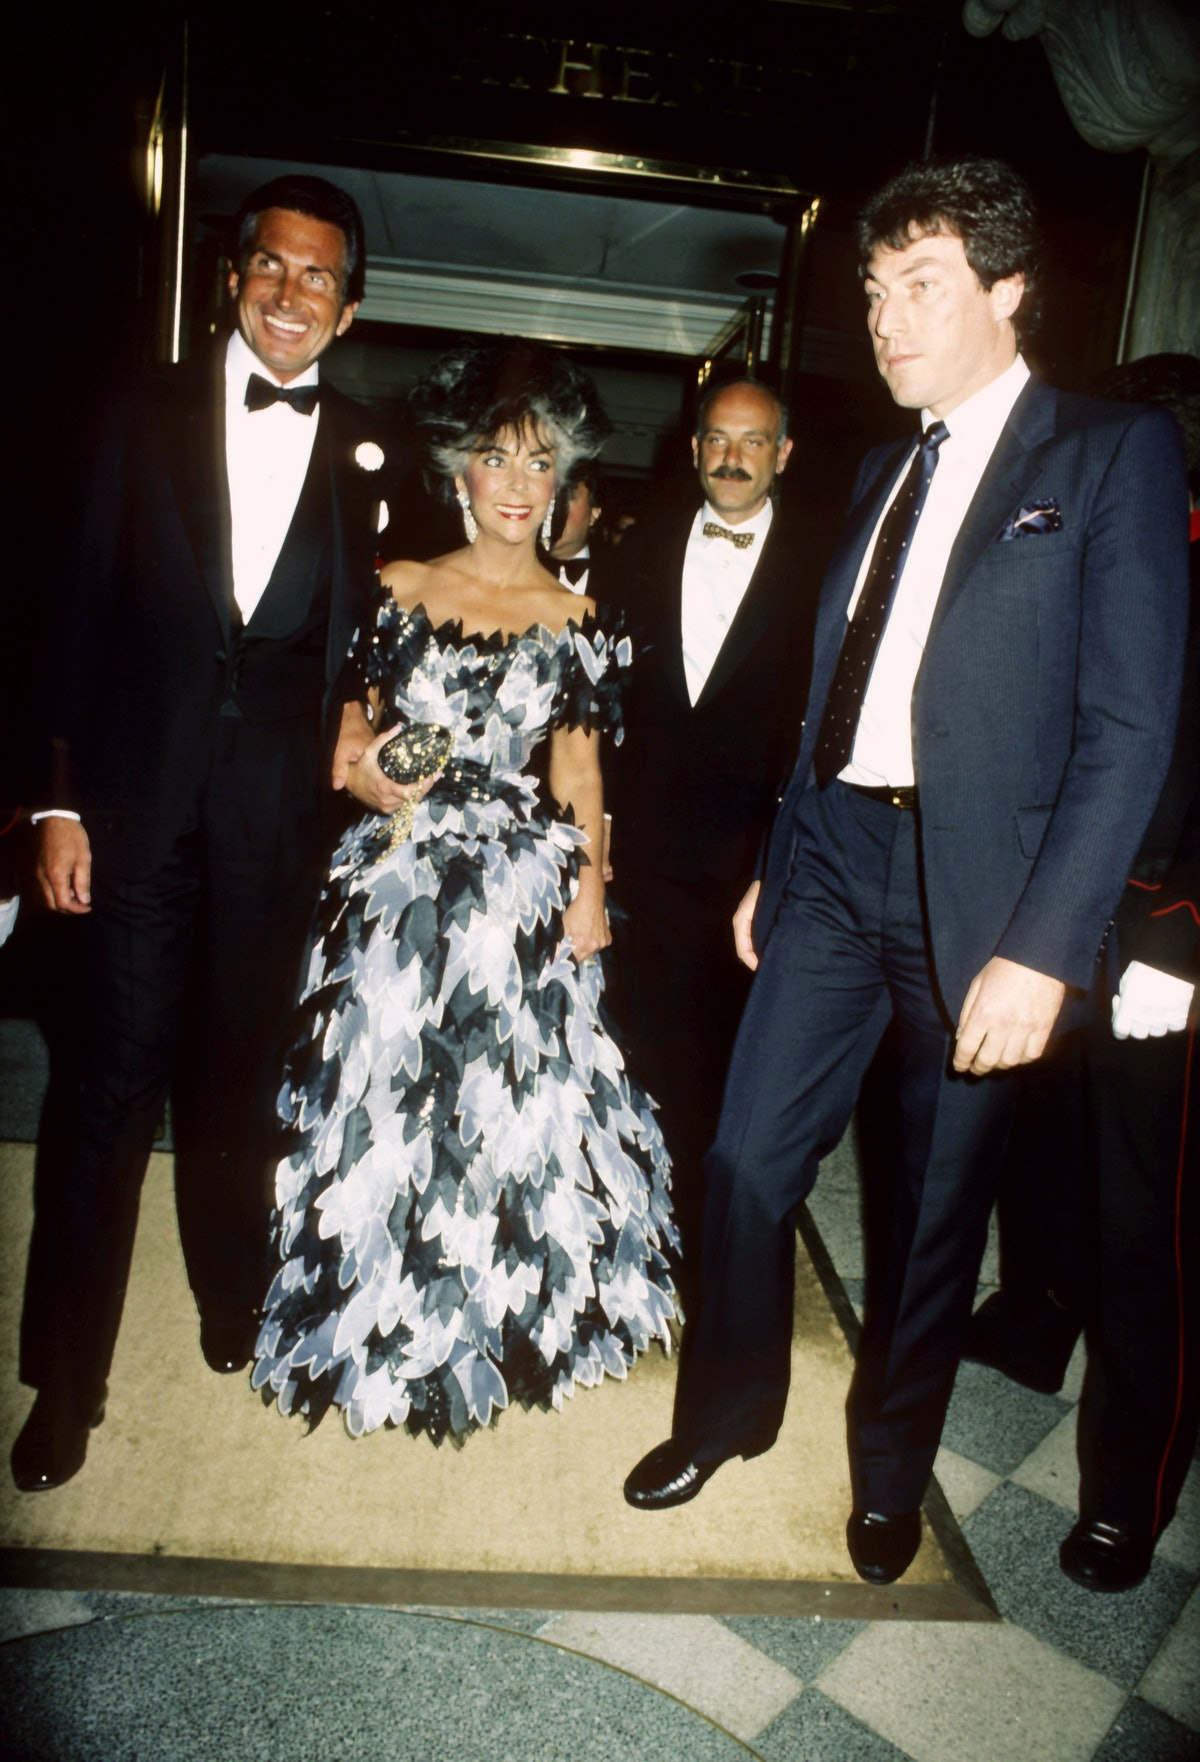 Film Society of Lincoln Center Tribute to Liz Taylor - May 19, 1986